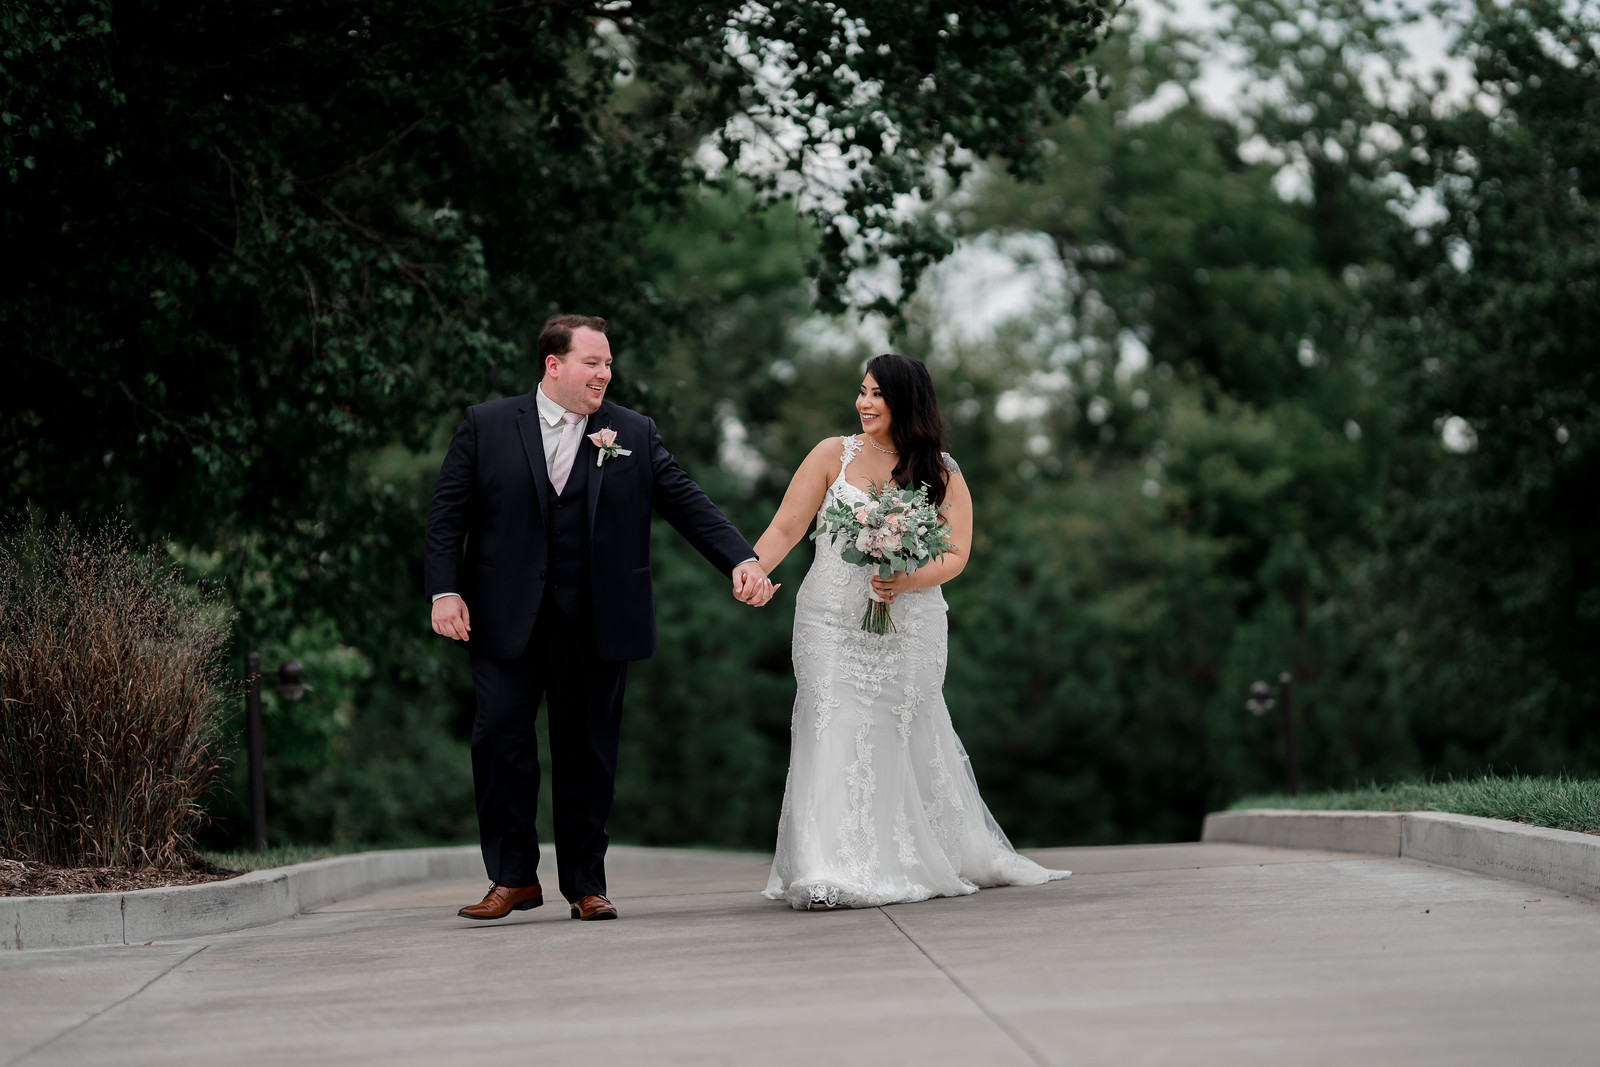 Bride and groom walk together holding hands and smiling